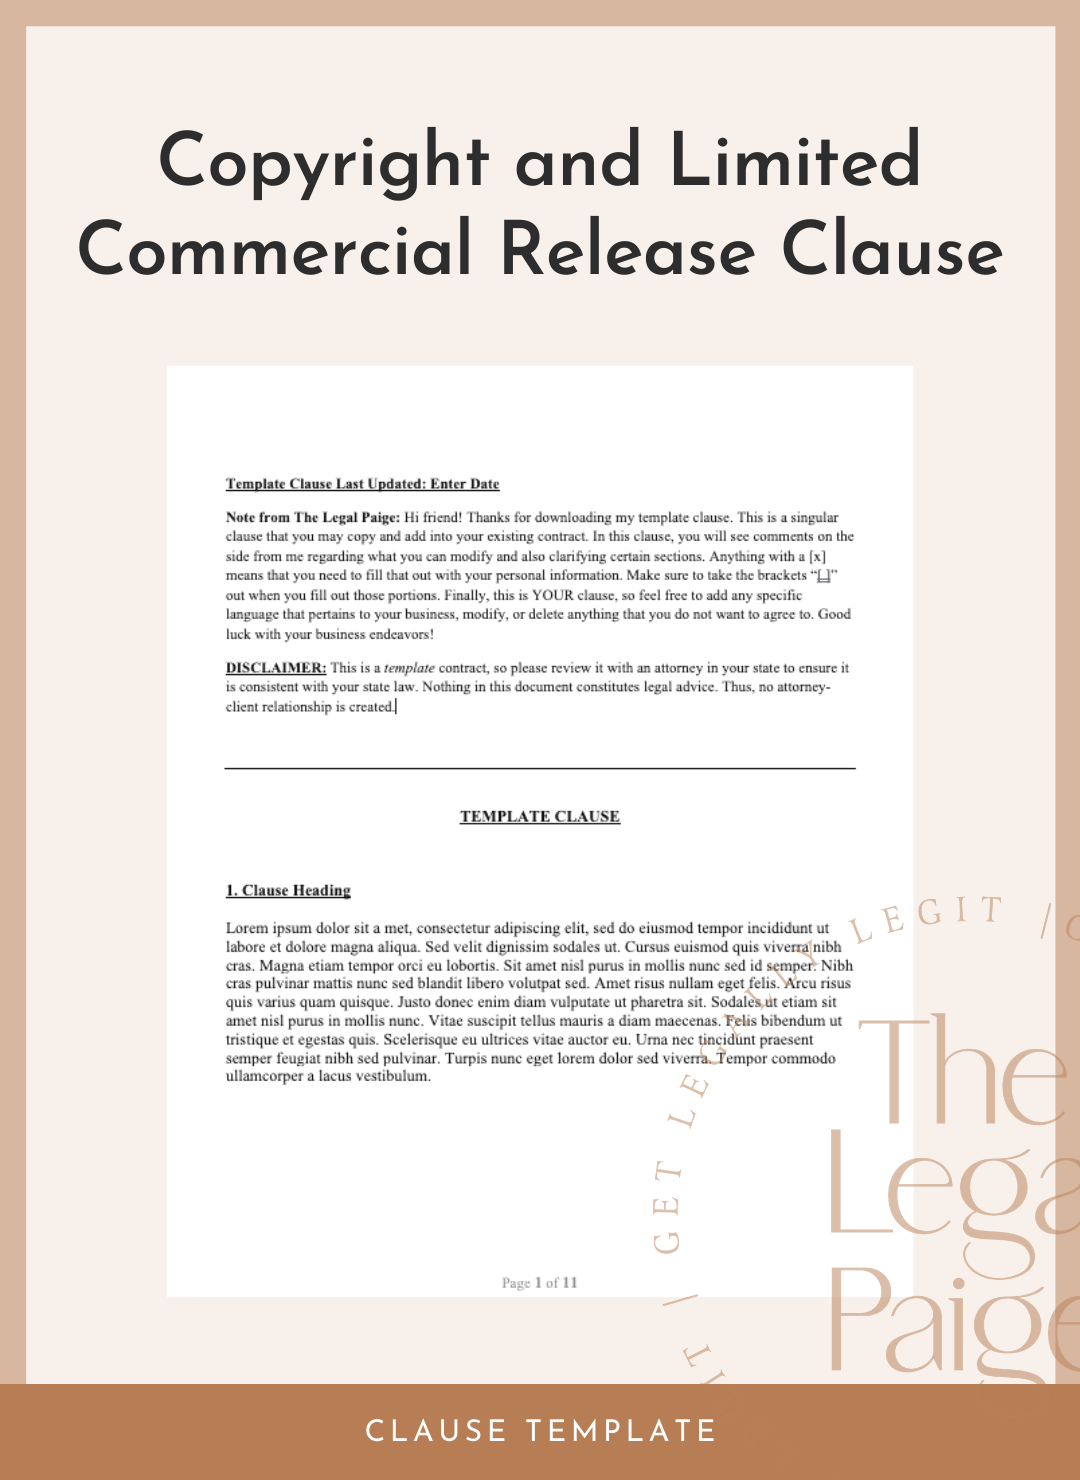 Copyright and Limited Commercial Release Clause